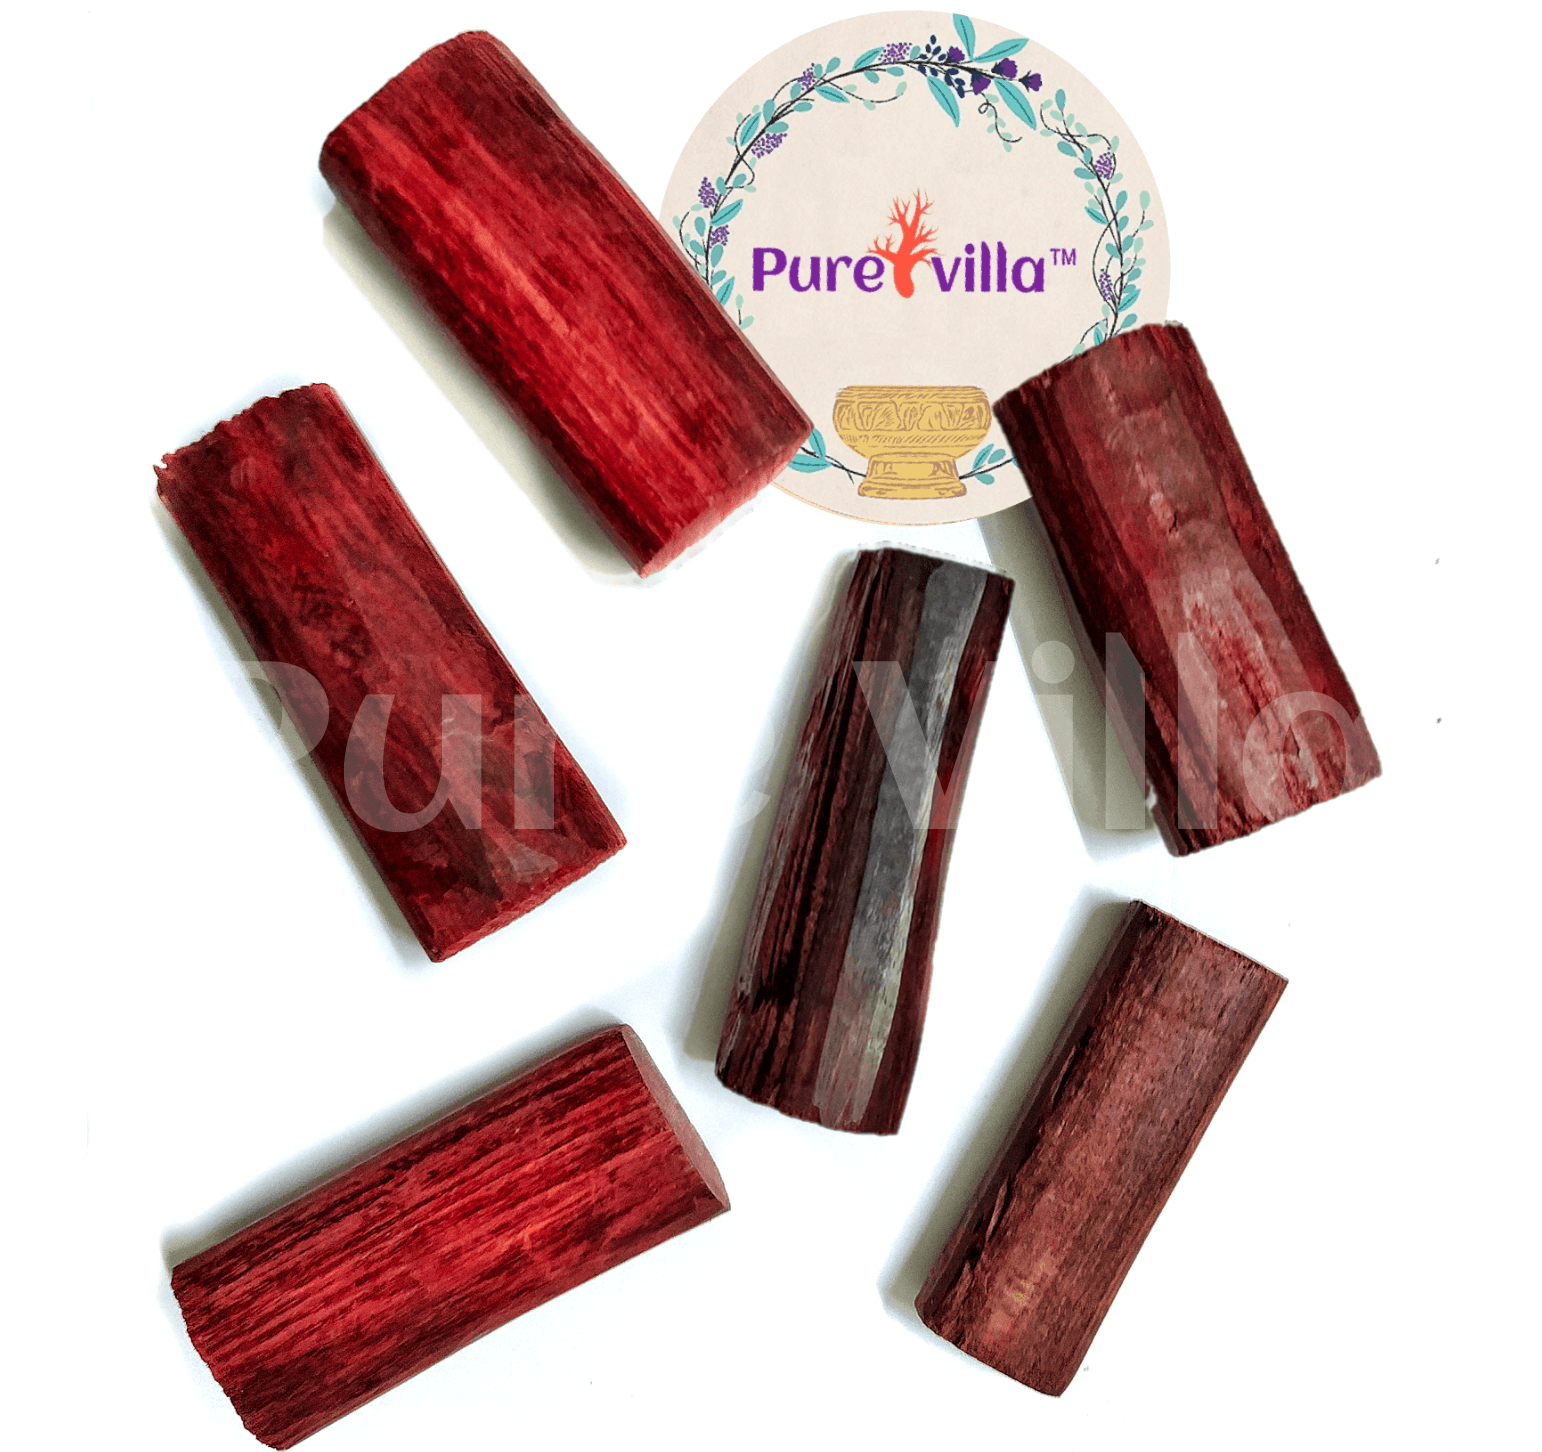 Red Sandalwood Sticks, Use for Puja | Tilak | Havan | Temples | Skin Treatment | Other Rituals. - Purevilla